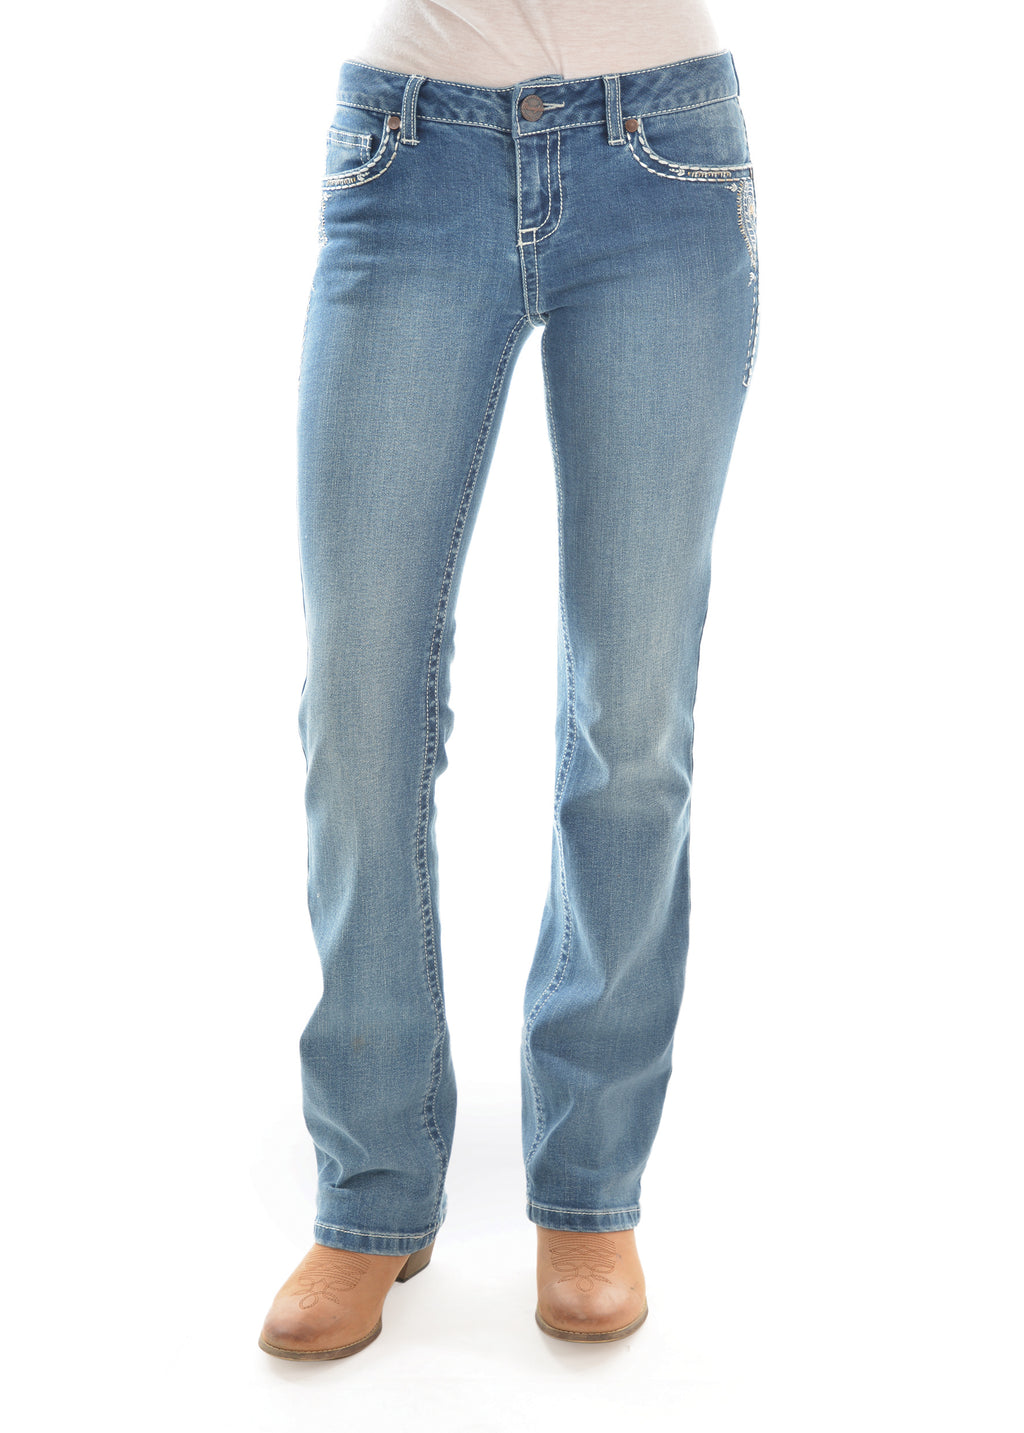 Women's Sits Above Hip Jean